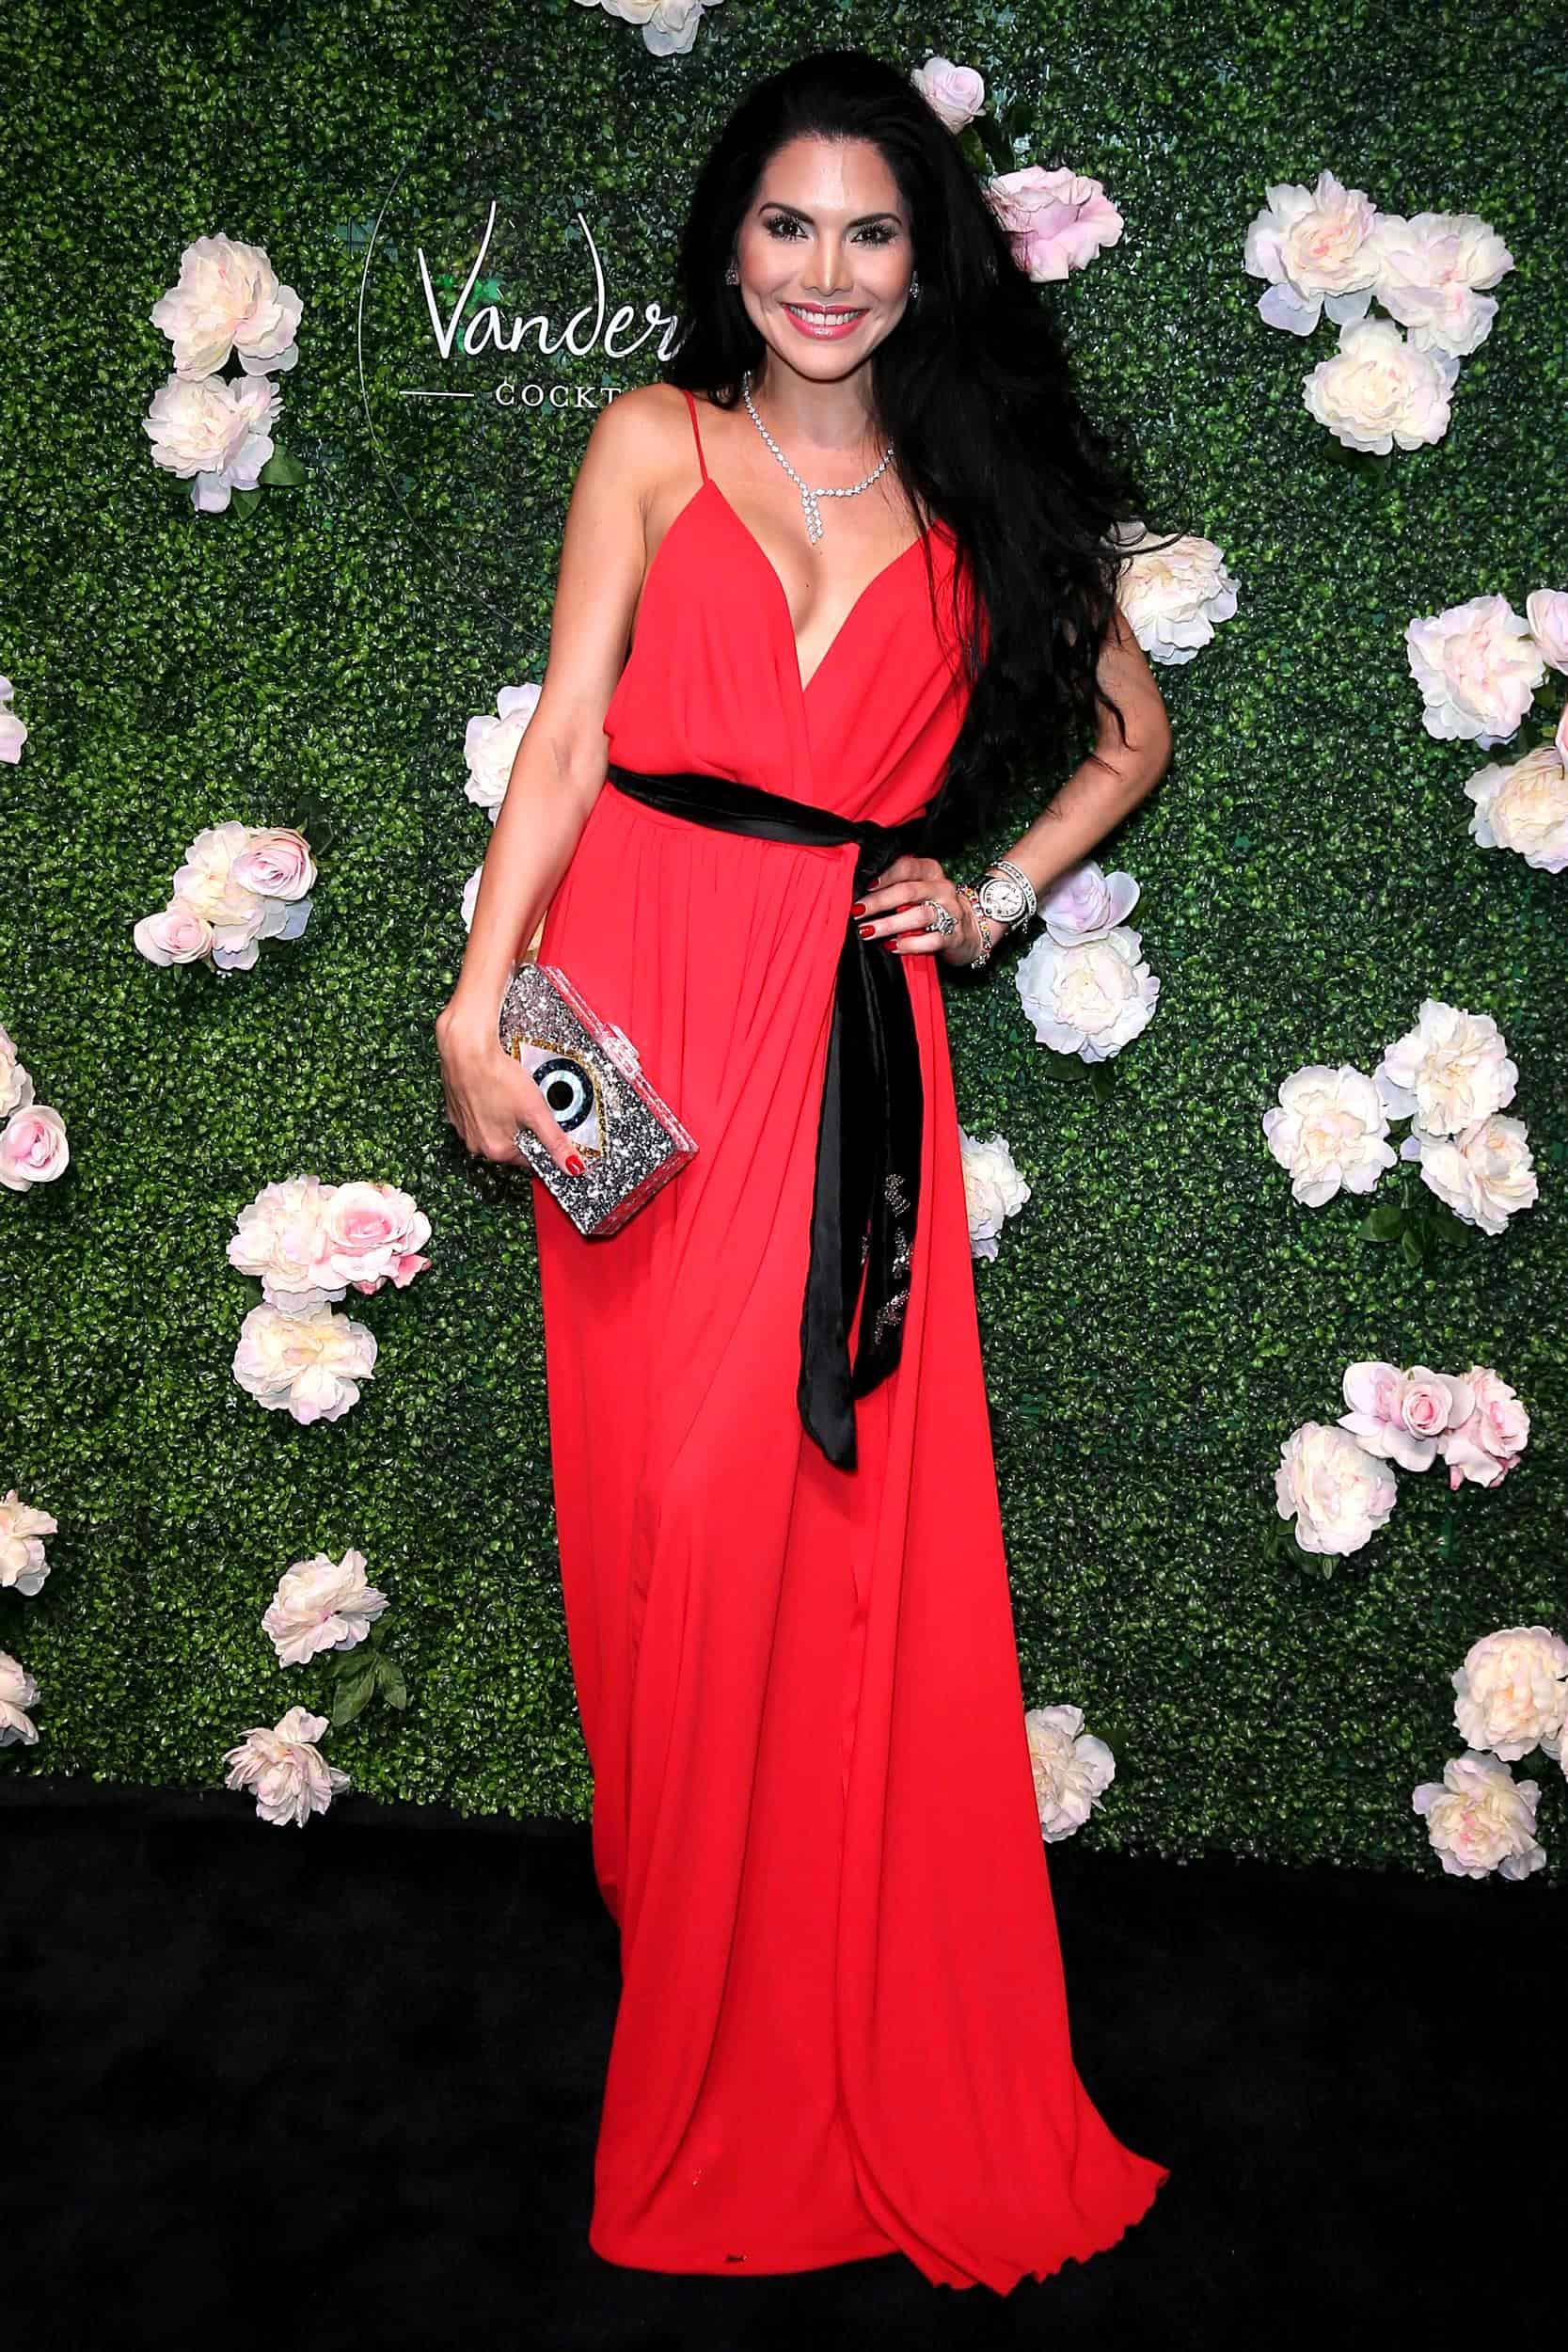 Joyce-Giraud-at-Vanderpump-Cocktail-Gard